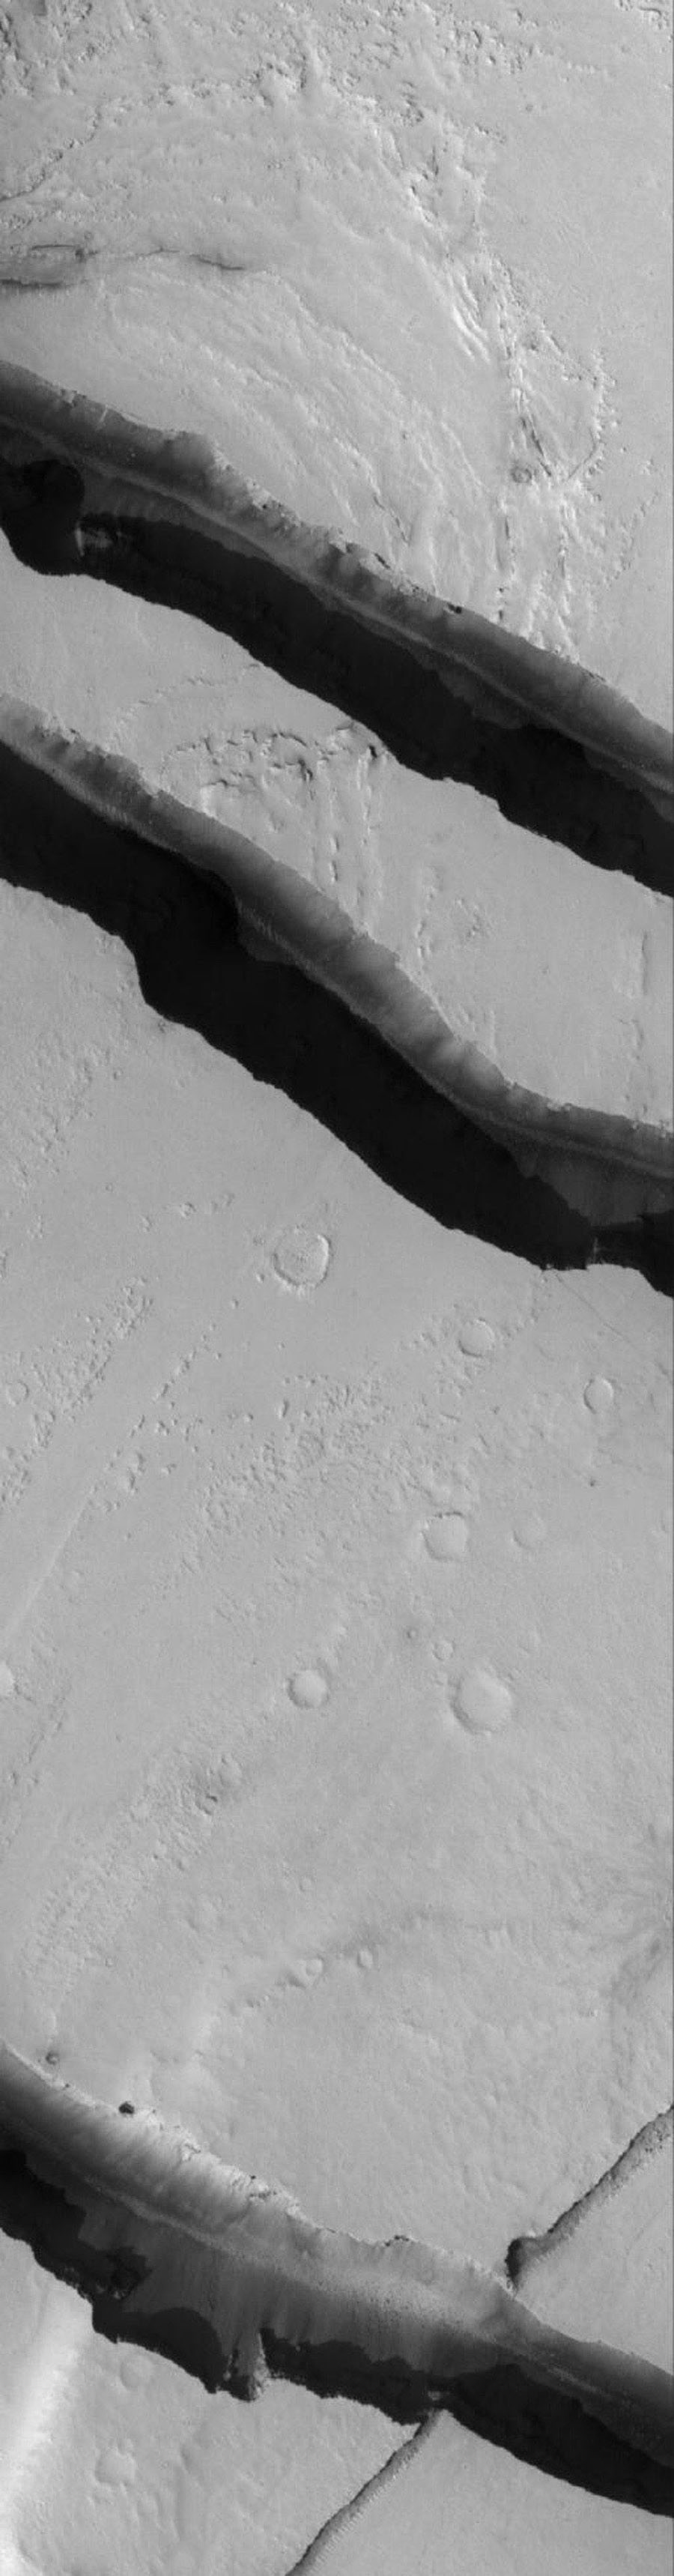 NASA's Mars Global Surveyor shows channels carved by catastrophic floods in the Tharsis region of Mars. This area is located northwest of the volcano, Jovis Tholus, and east of the large martian volcano, Olympus Mons.